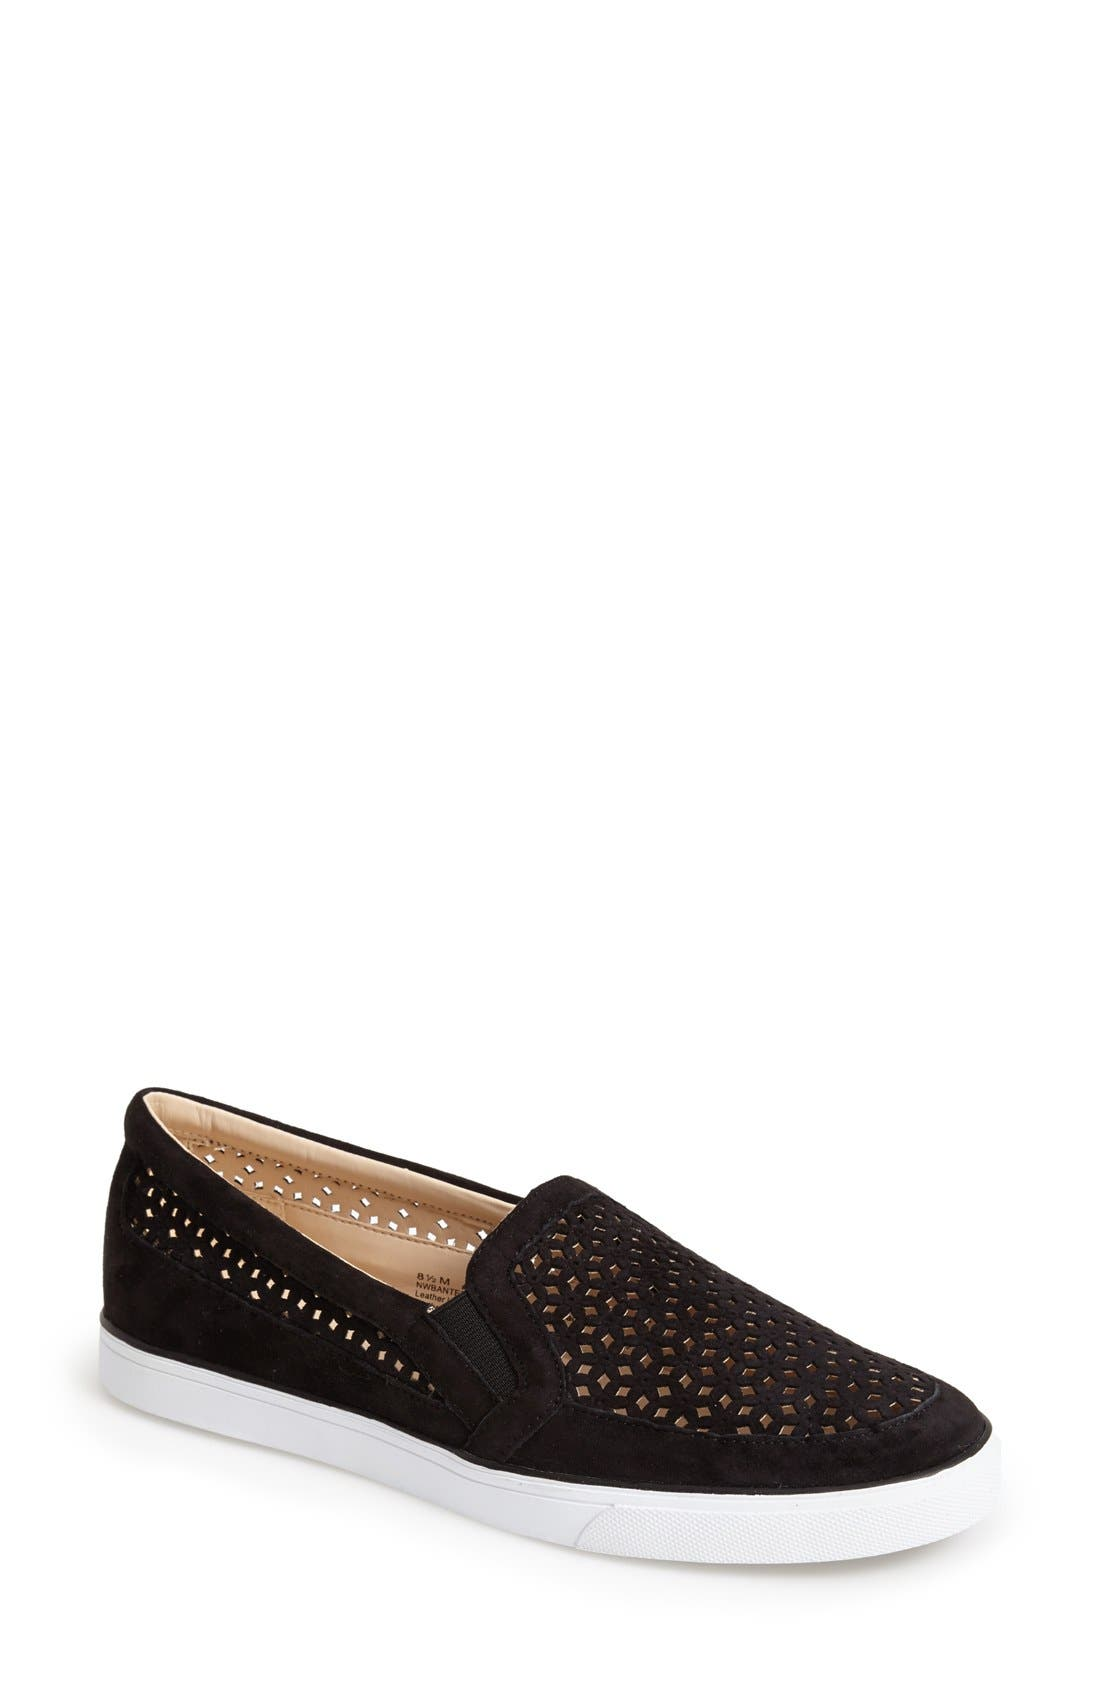 Alternate Image 1 Selected - Nine West 'Banter' Perforated Suede Slip-On Sneaker (Women)